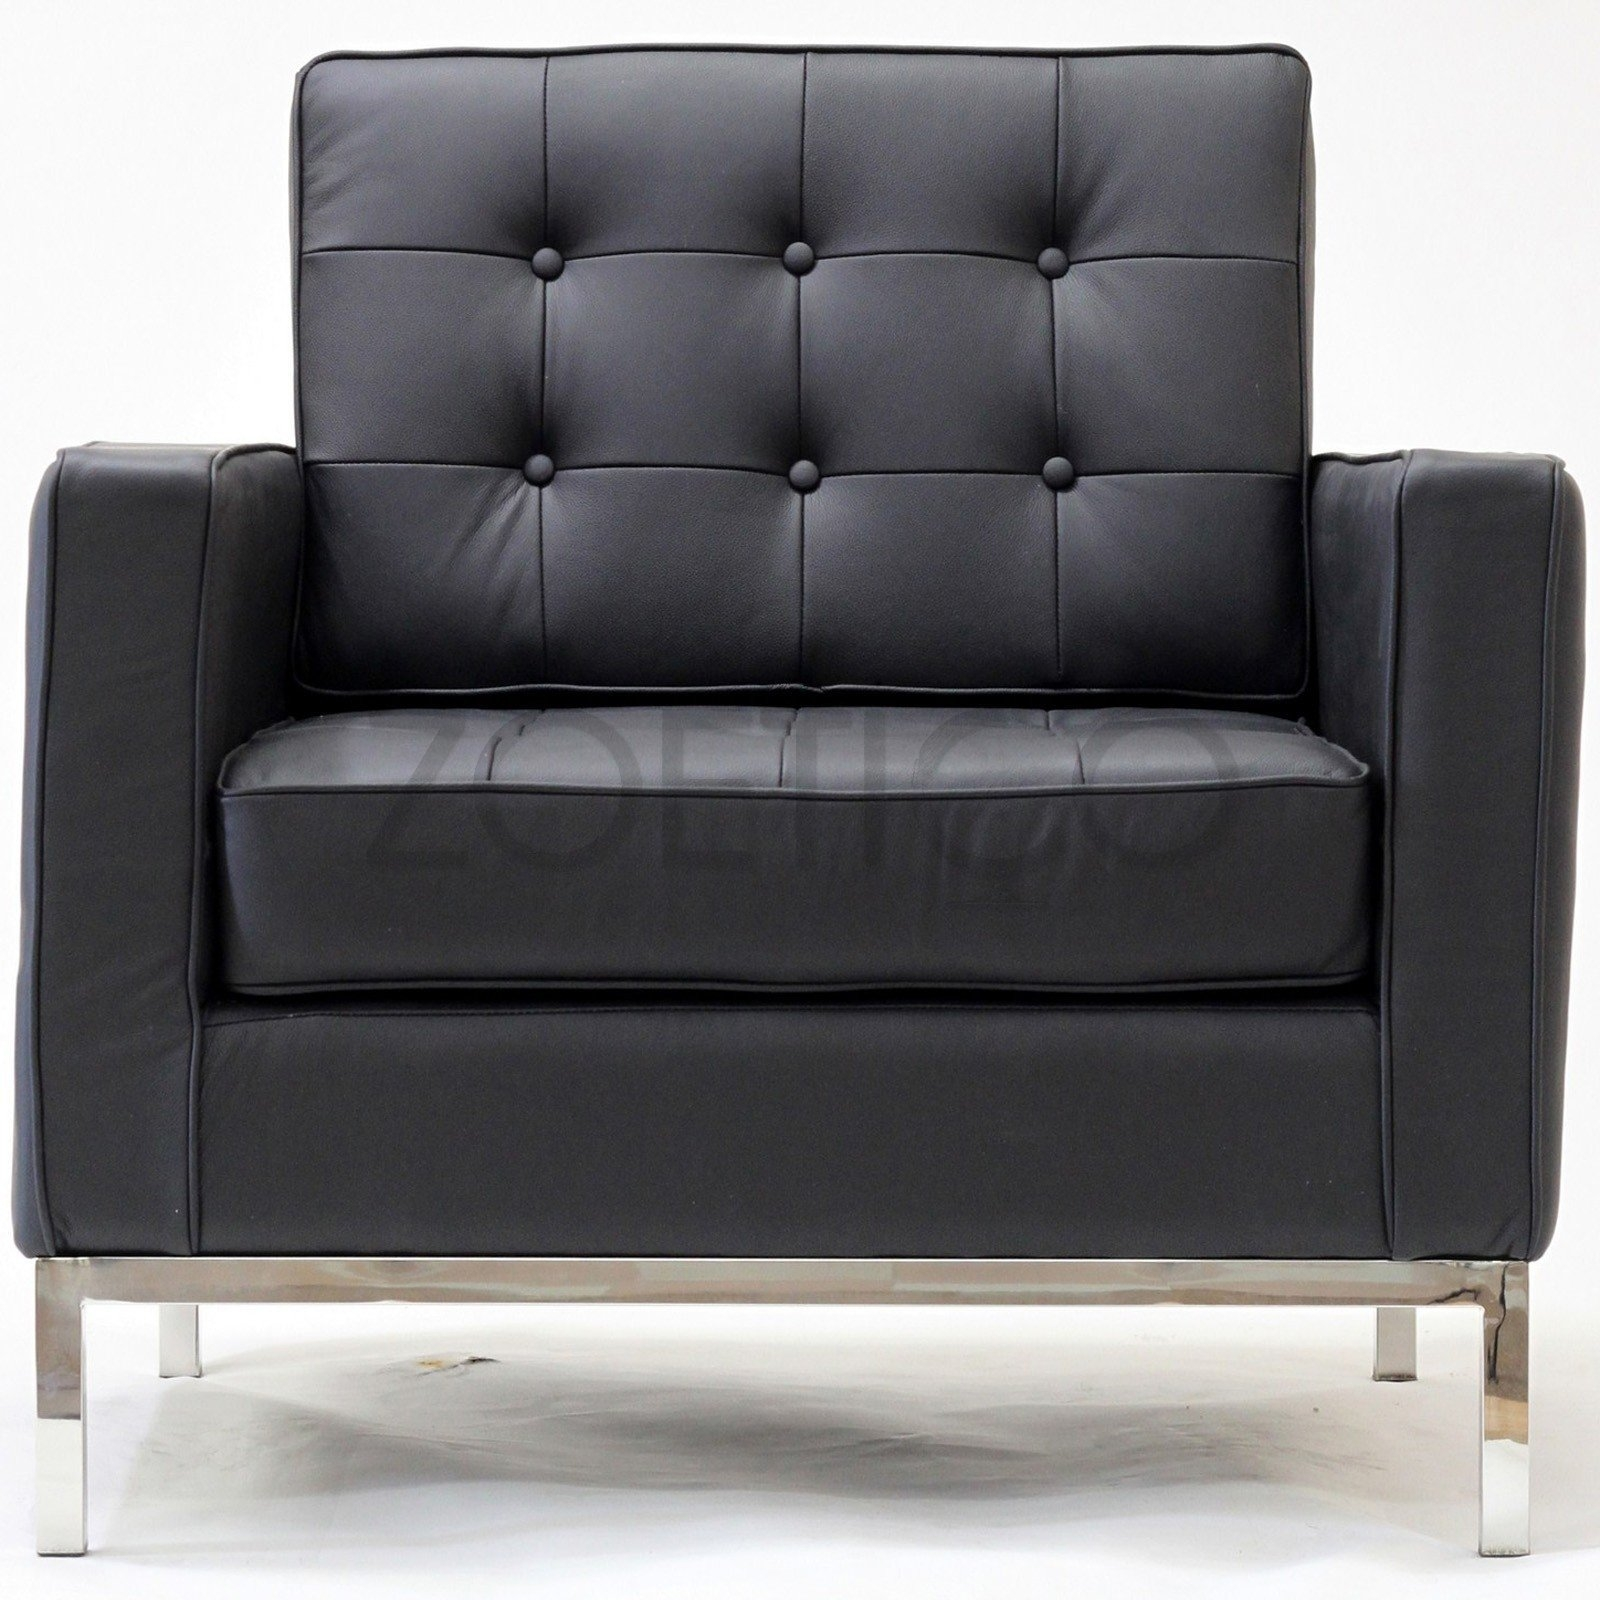 Florence Knoll Style Armchair In Leather Multiple Colors Inside Florence Knoll Style Sofas (Image 6 of 15)